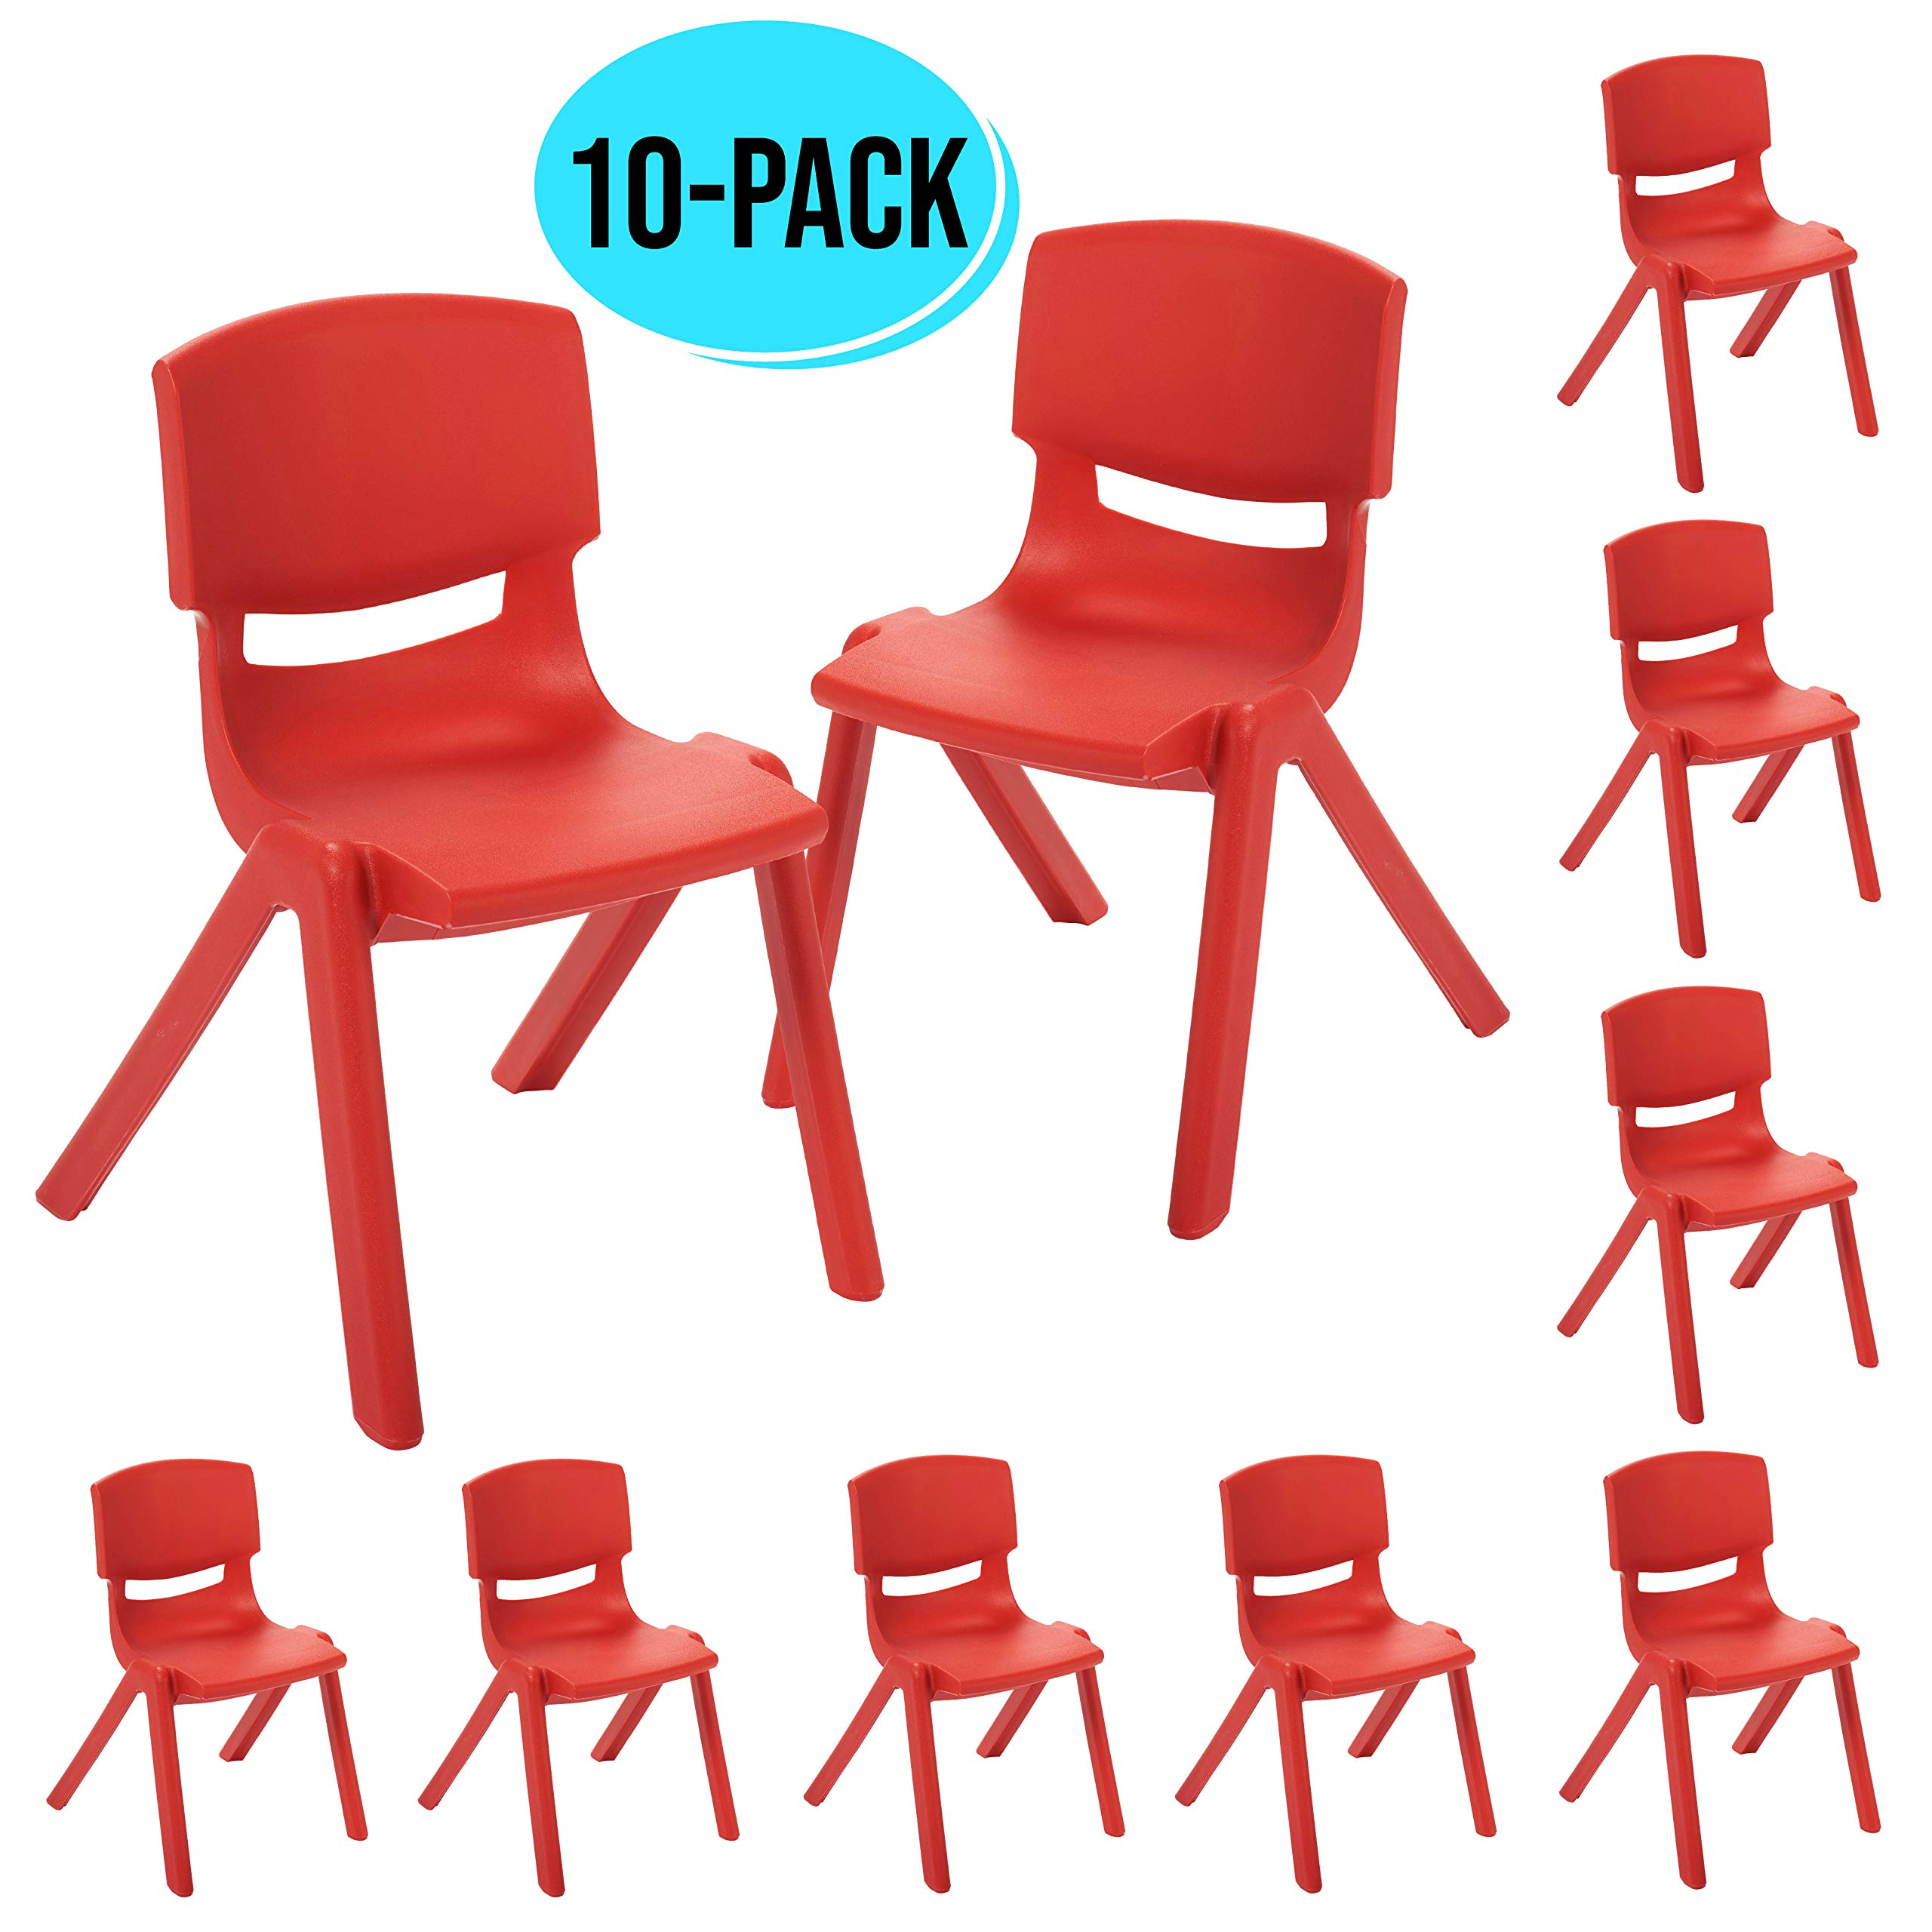 ECR4Kids 12 inch Plastic Stackable Classroom Chairs, Indoor/Outdoor Resin Stack Chairs for Kids, Red (10-Pack)